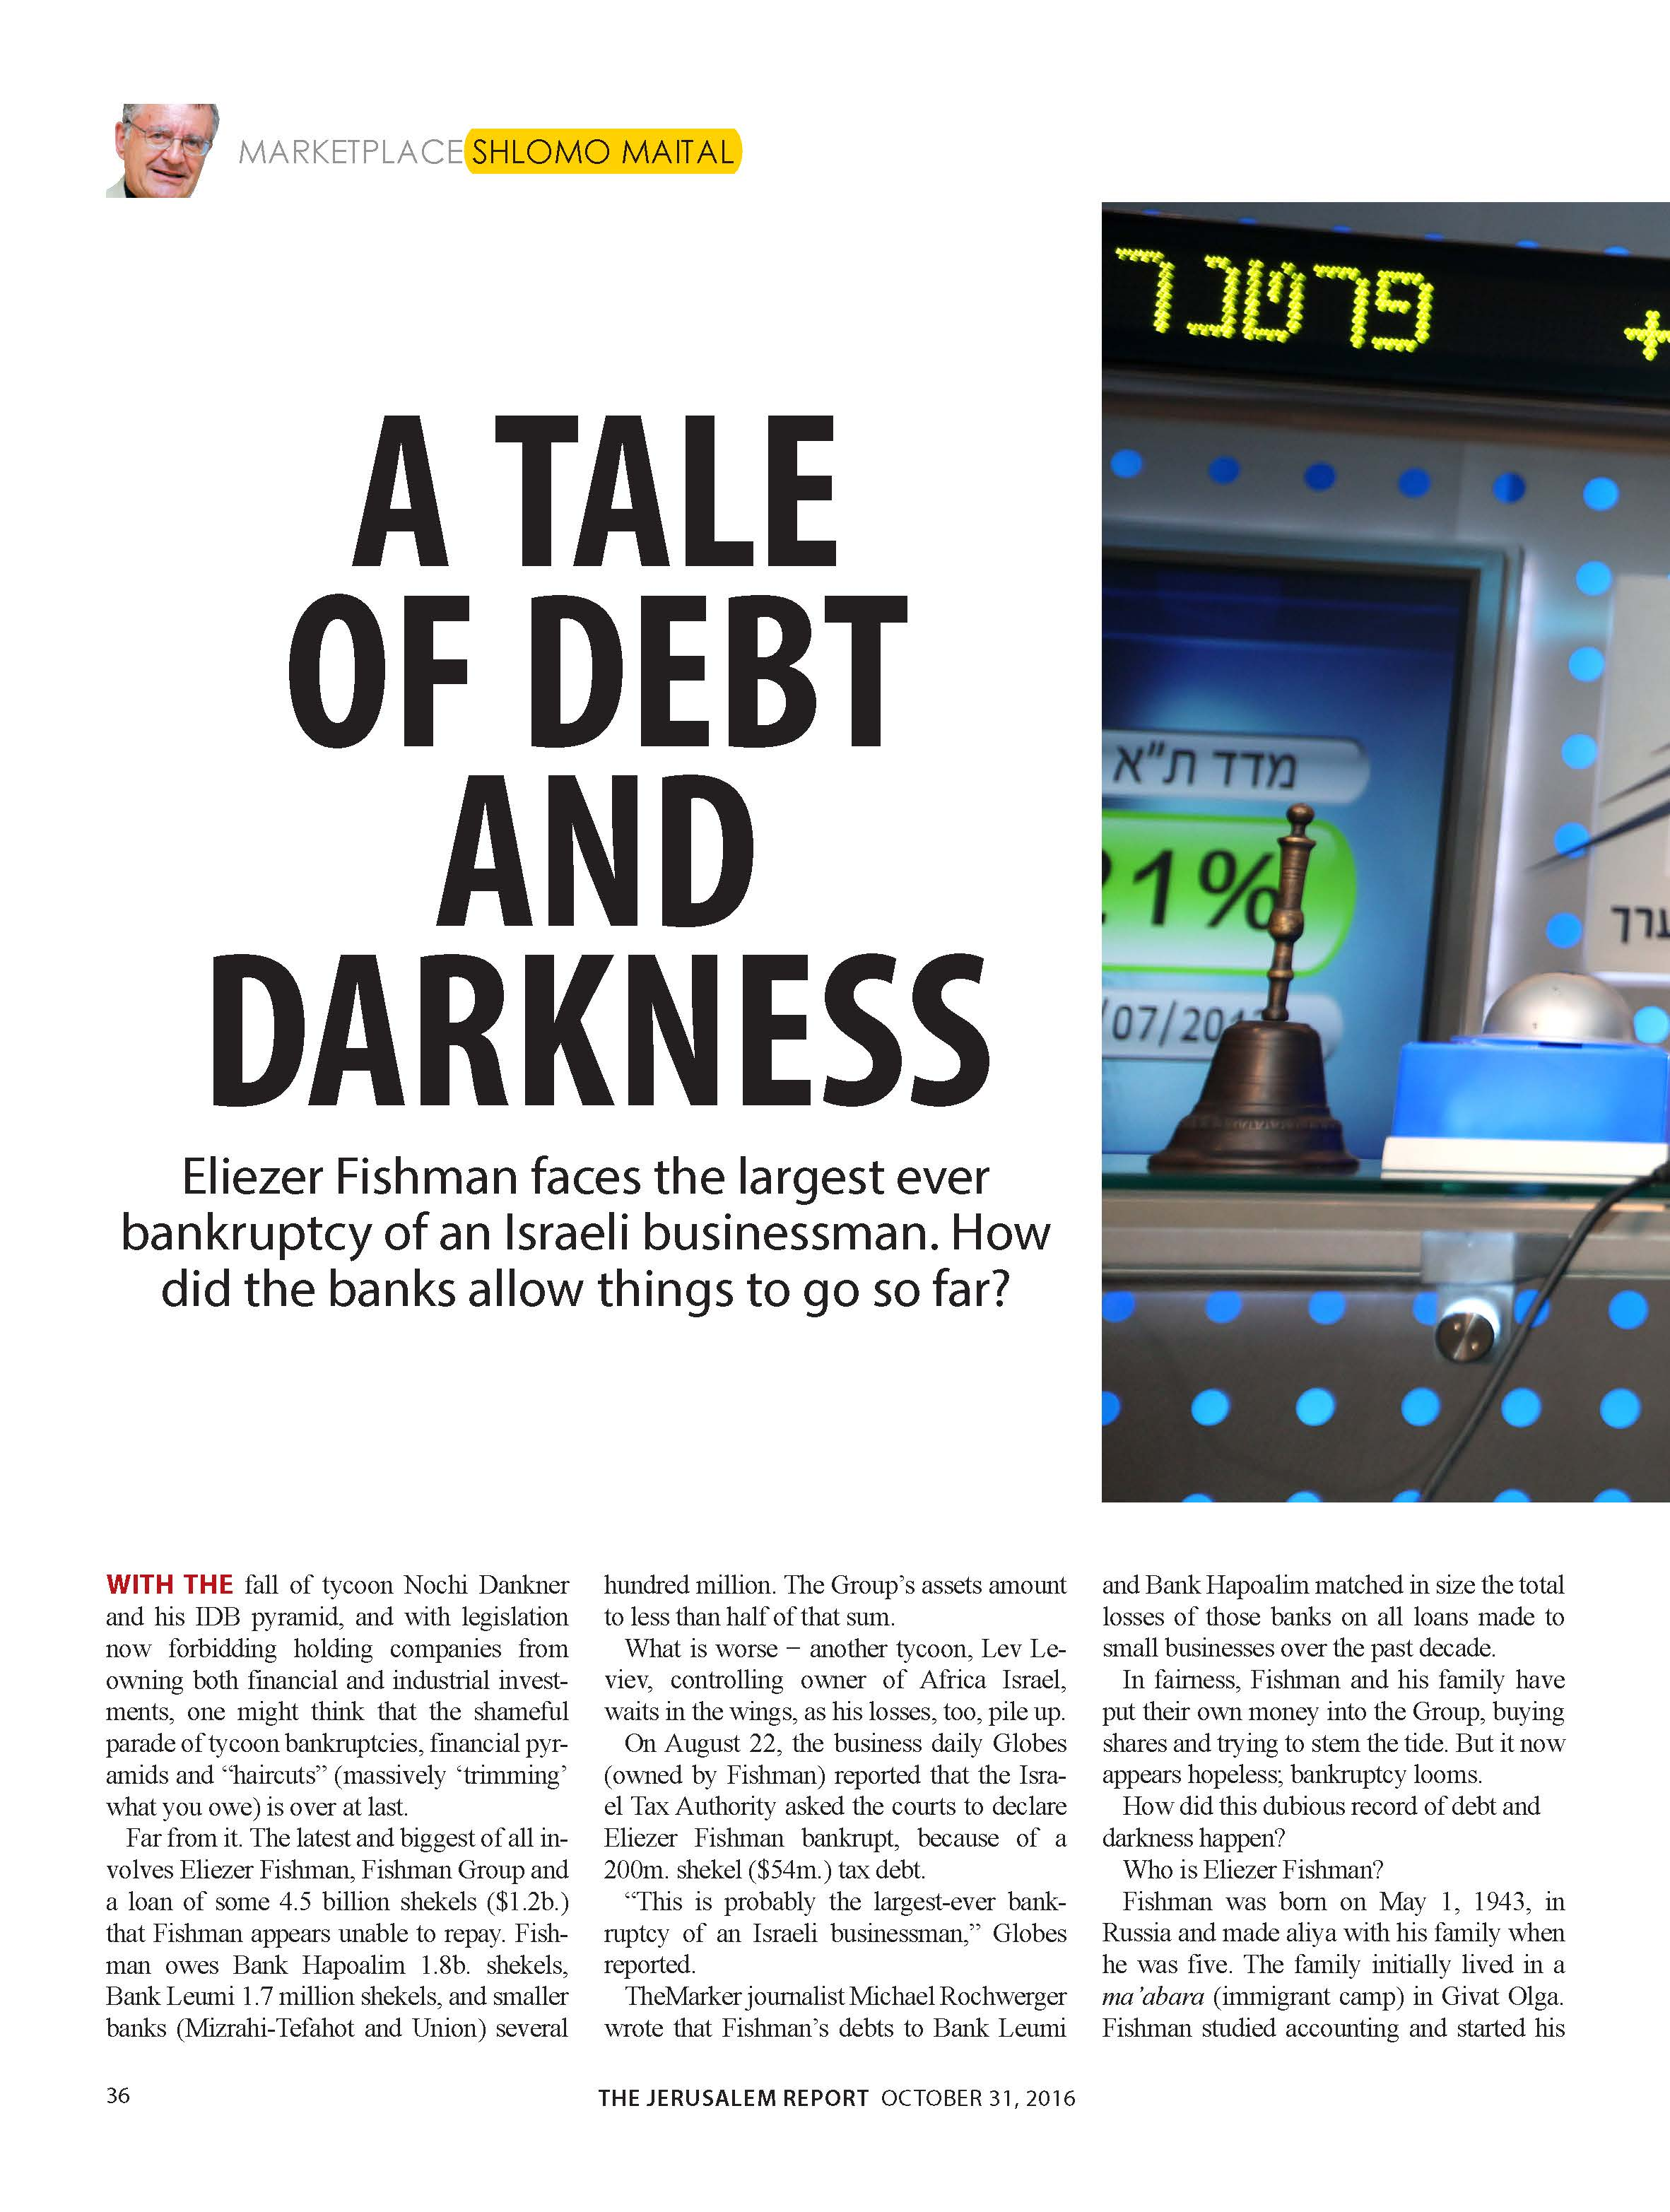 A Tale of debt and darkness